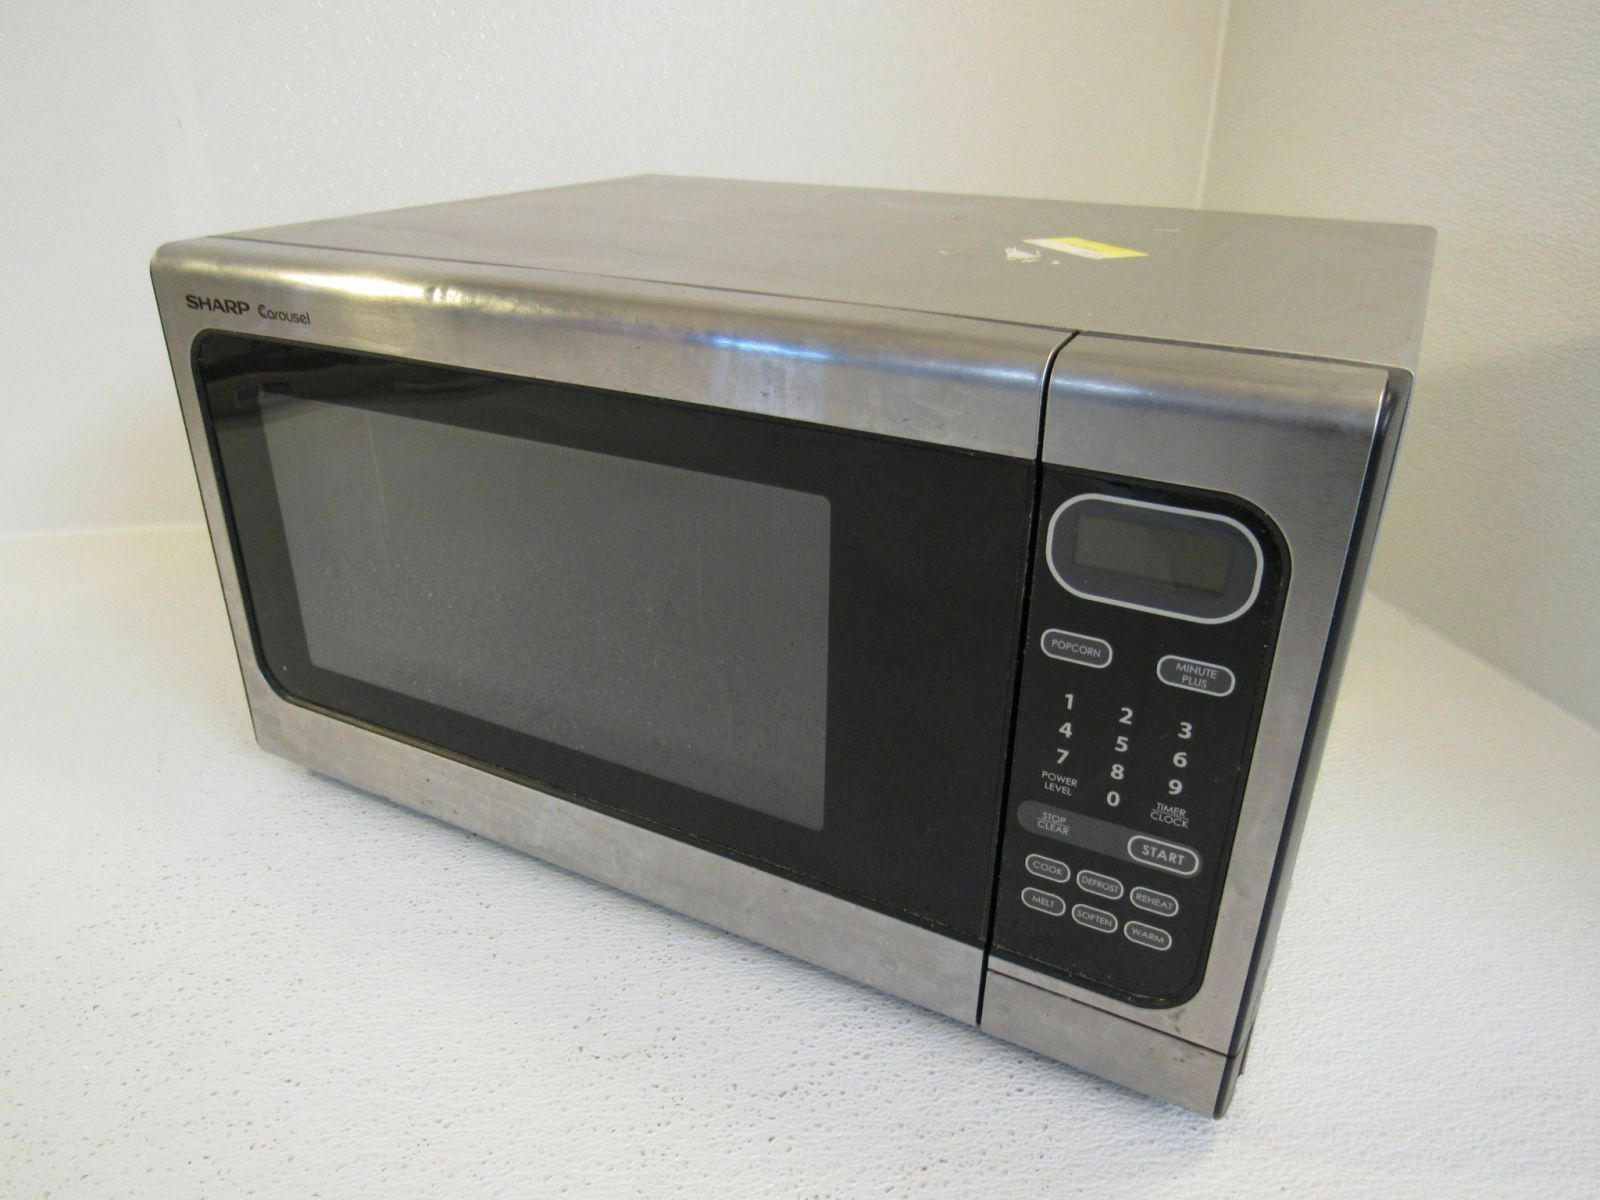 Sharp R 408ls 1100 Watts Microwave